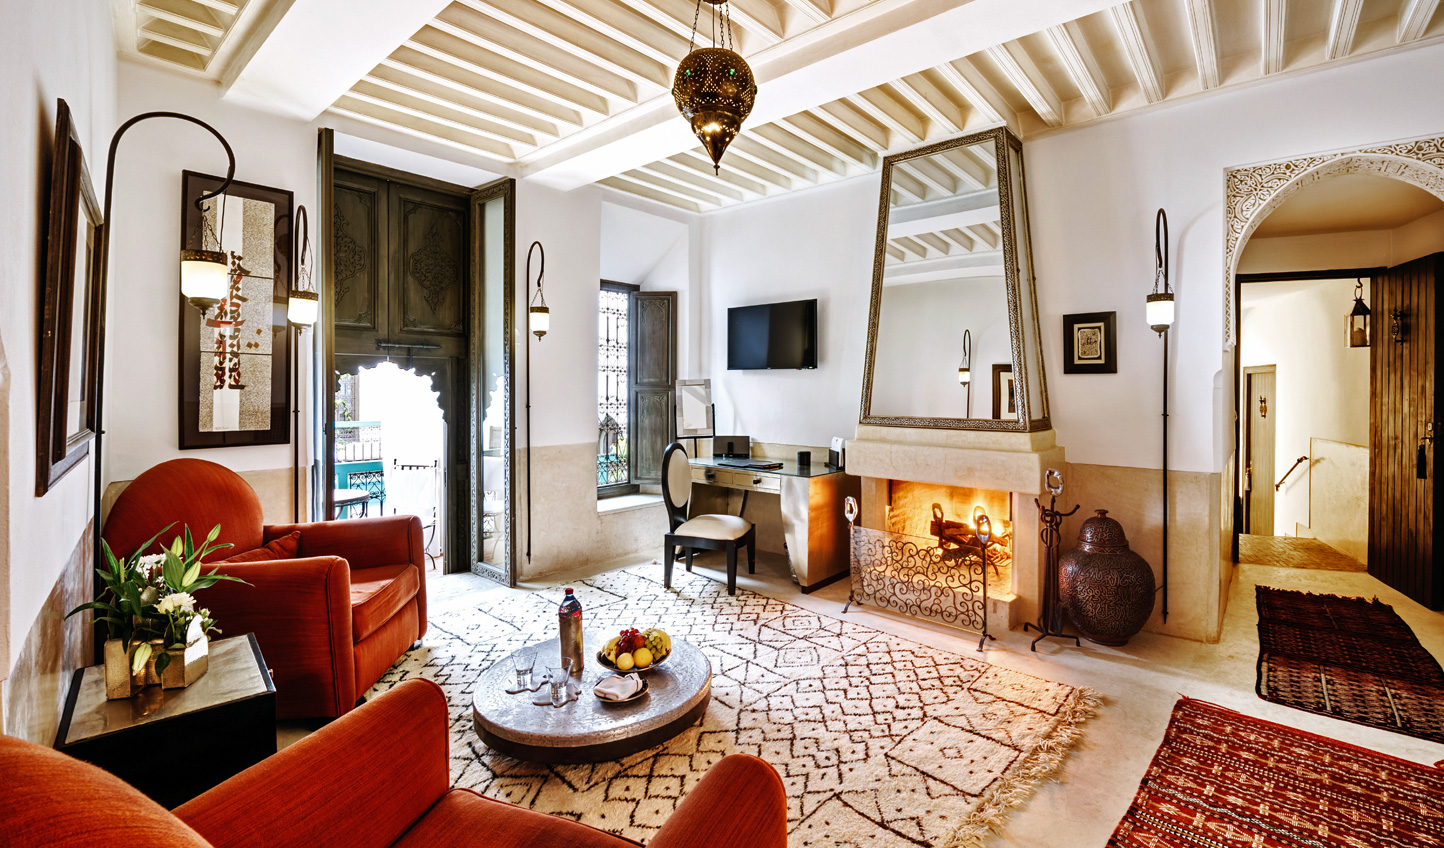 A stylish stay in the heart of the medina at Riad Farnatchi